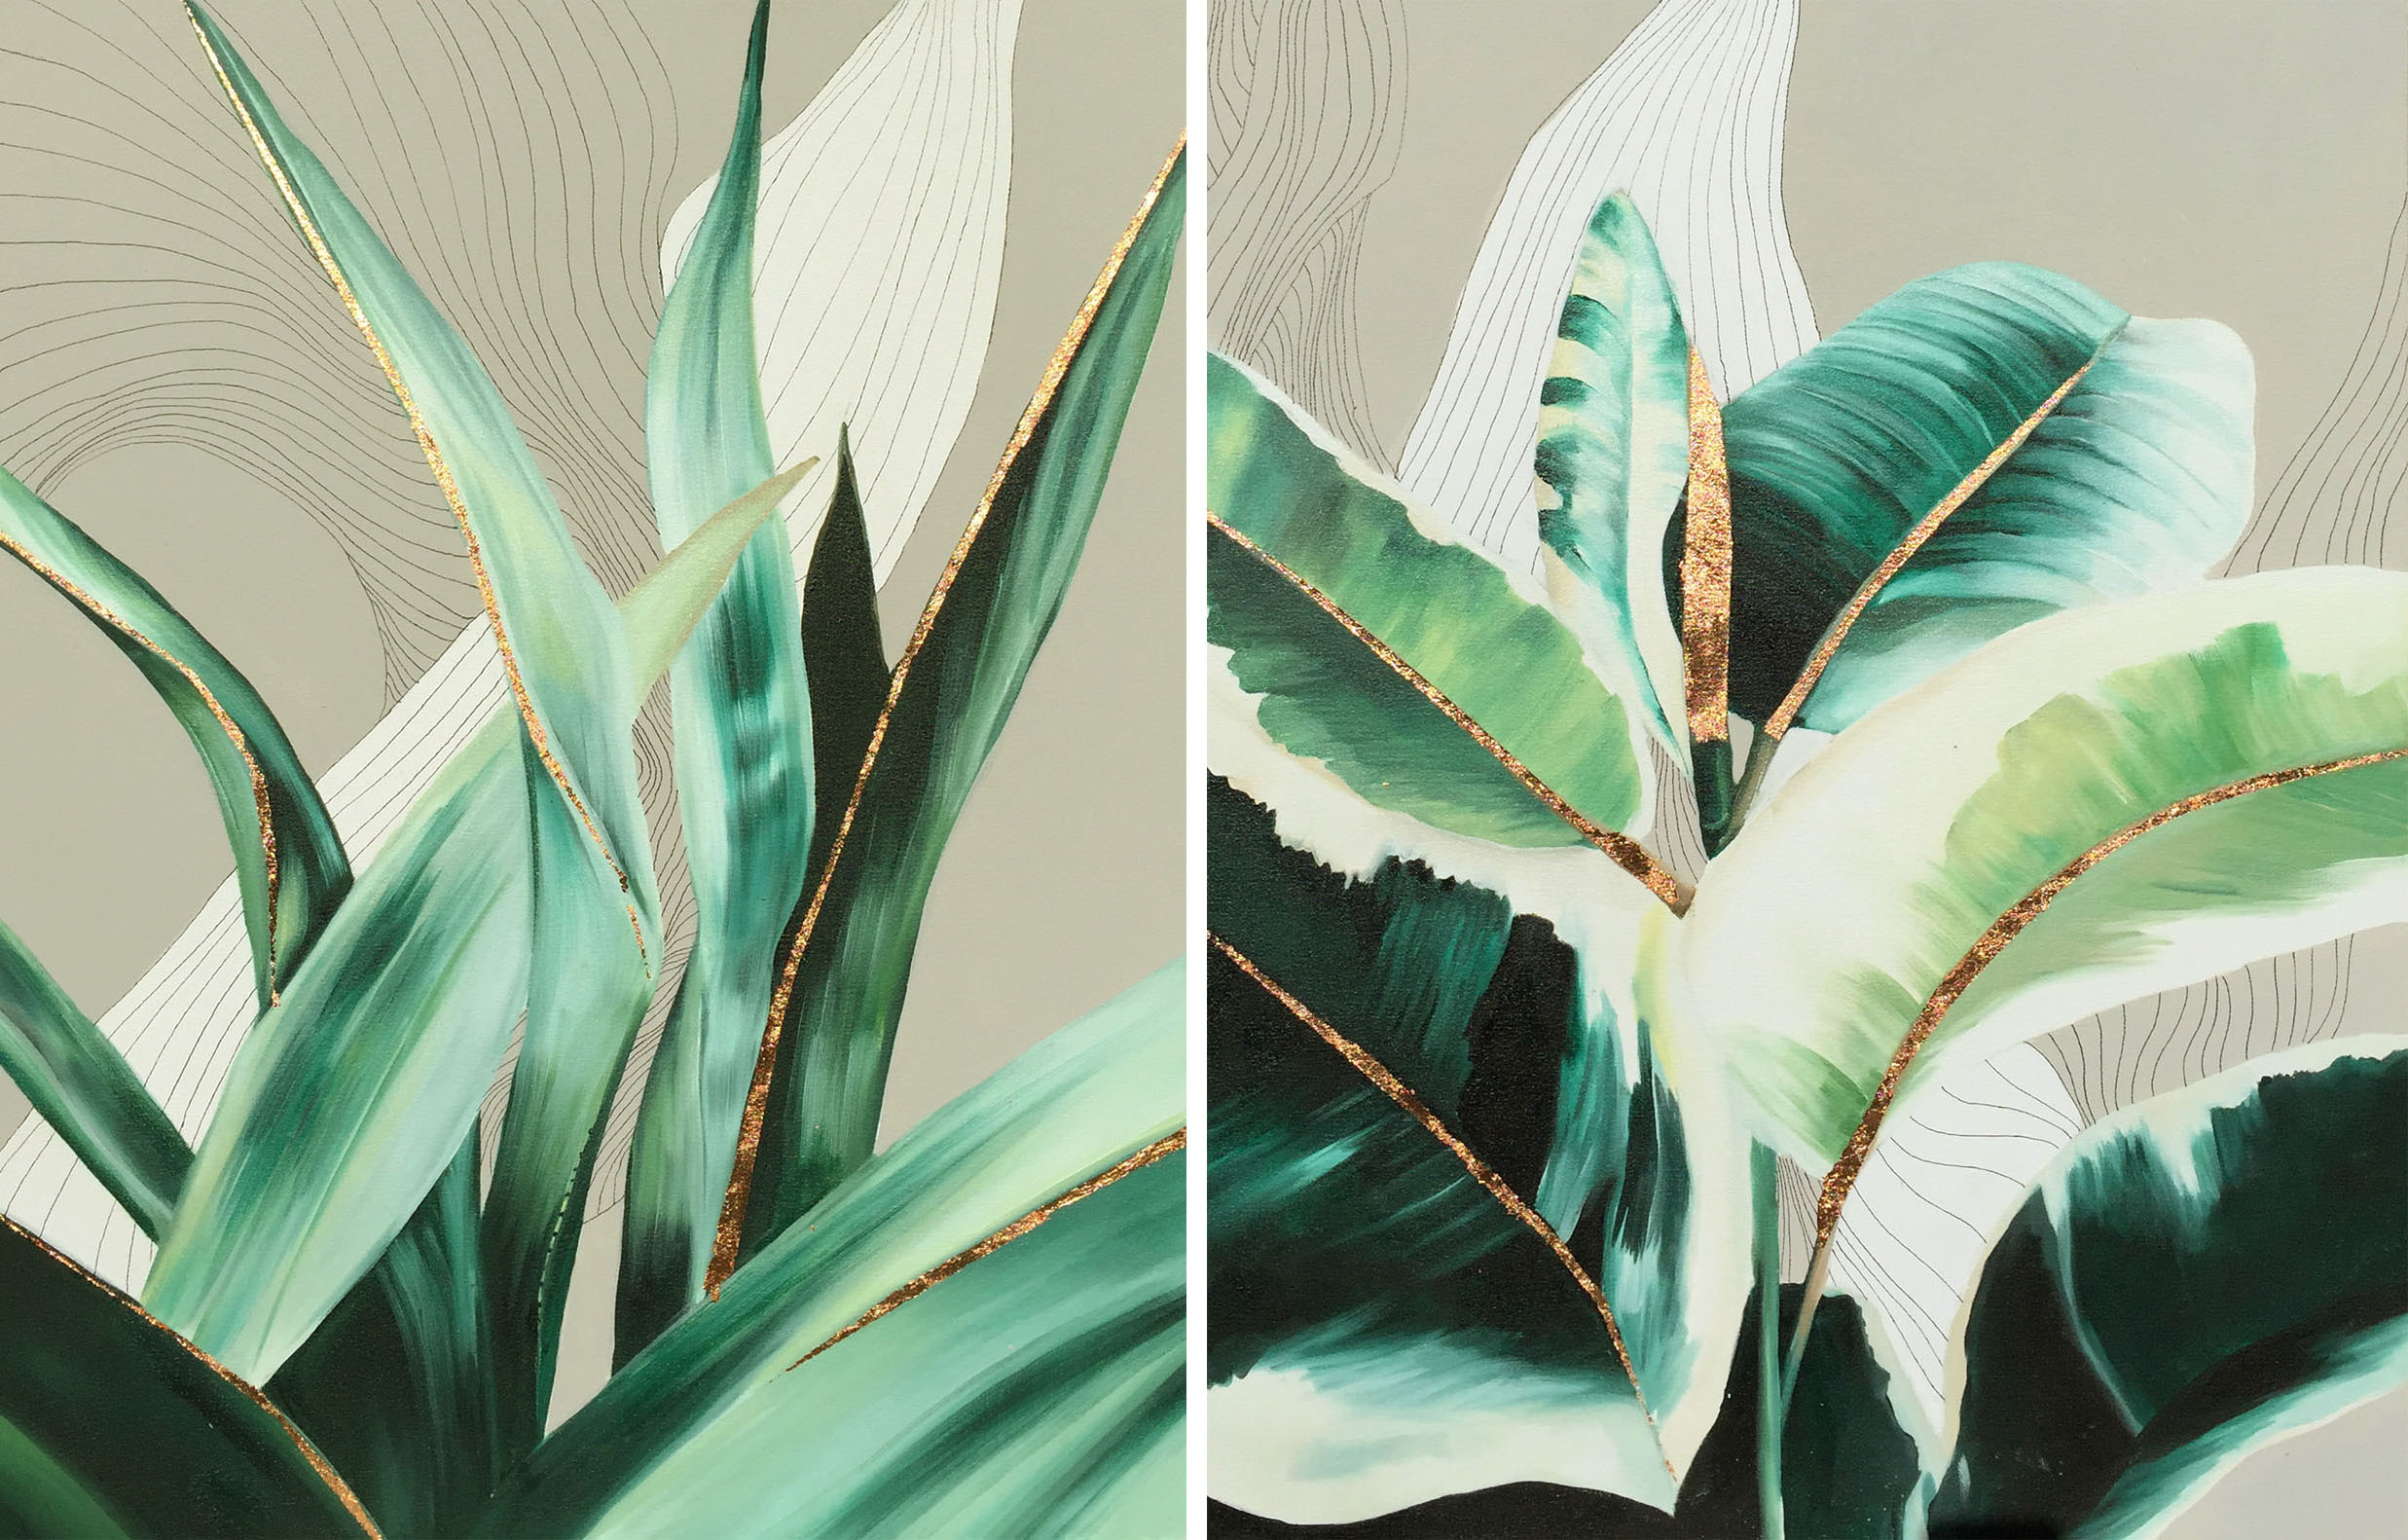 Vicky Sanders Abstract Botanical - Emerald and Copper